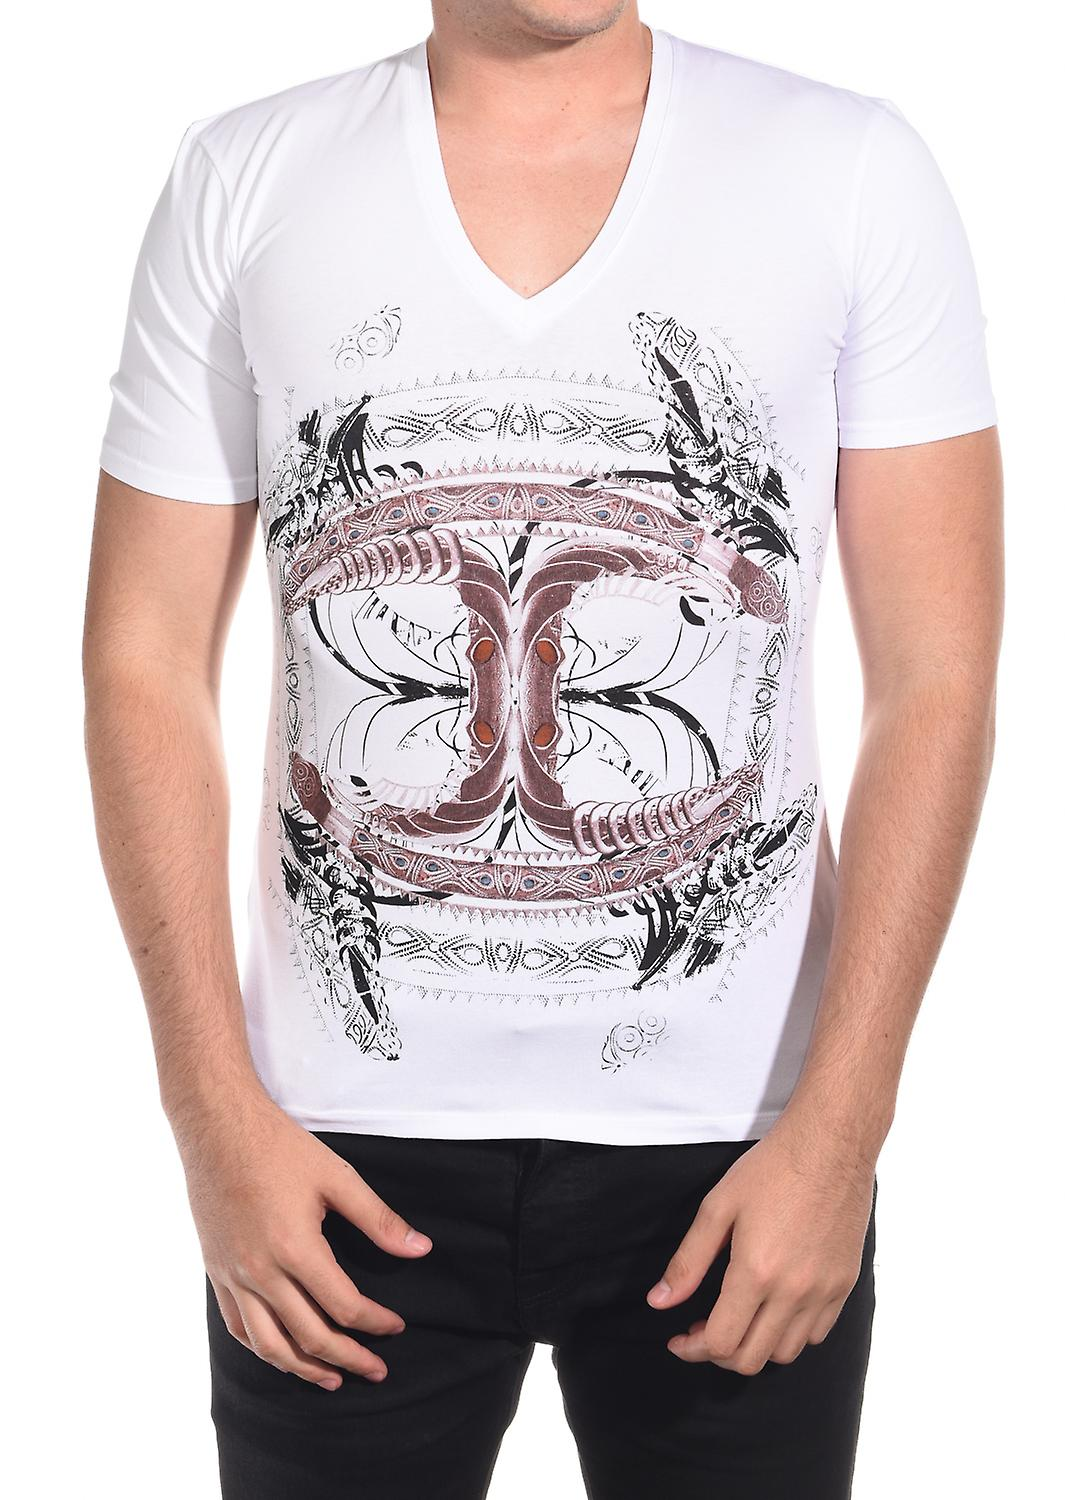 Just Cavalli Men's Classic Fit Jersey Tee T-Shirt Cultured V-Neck White